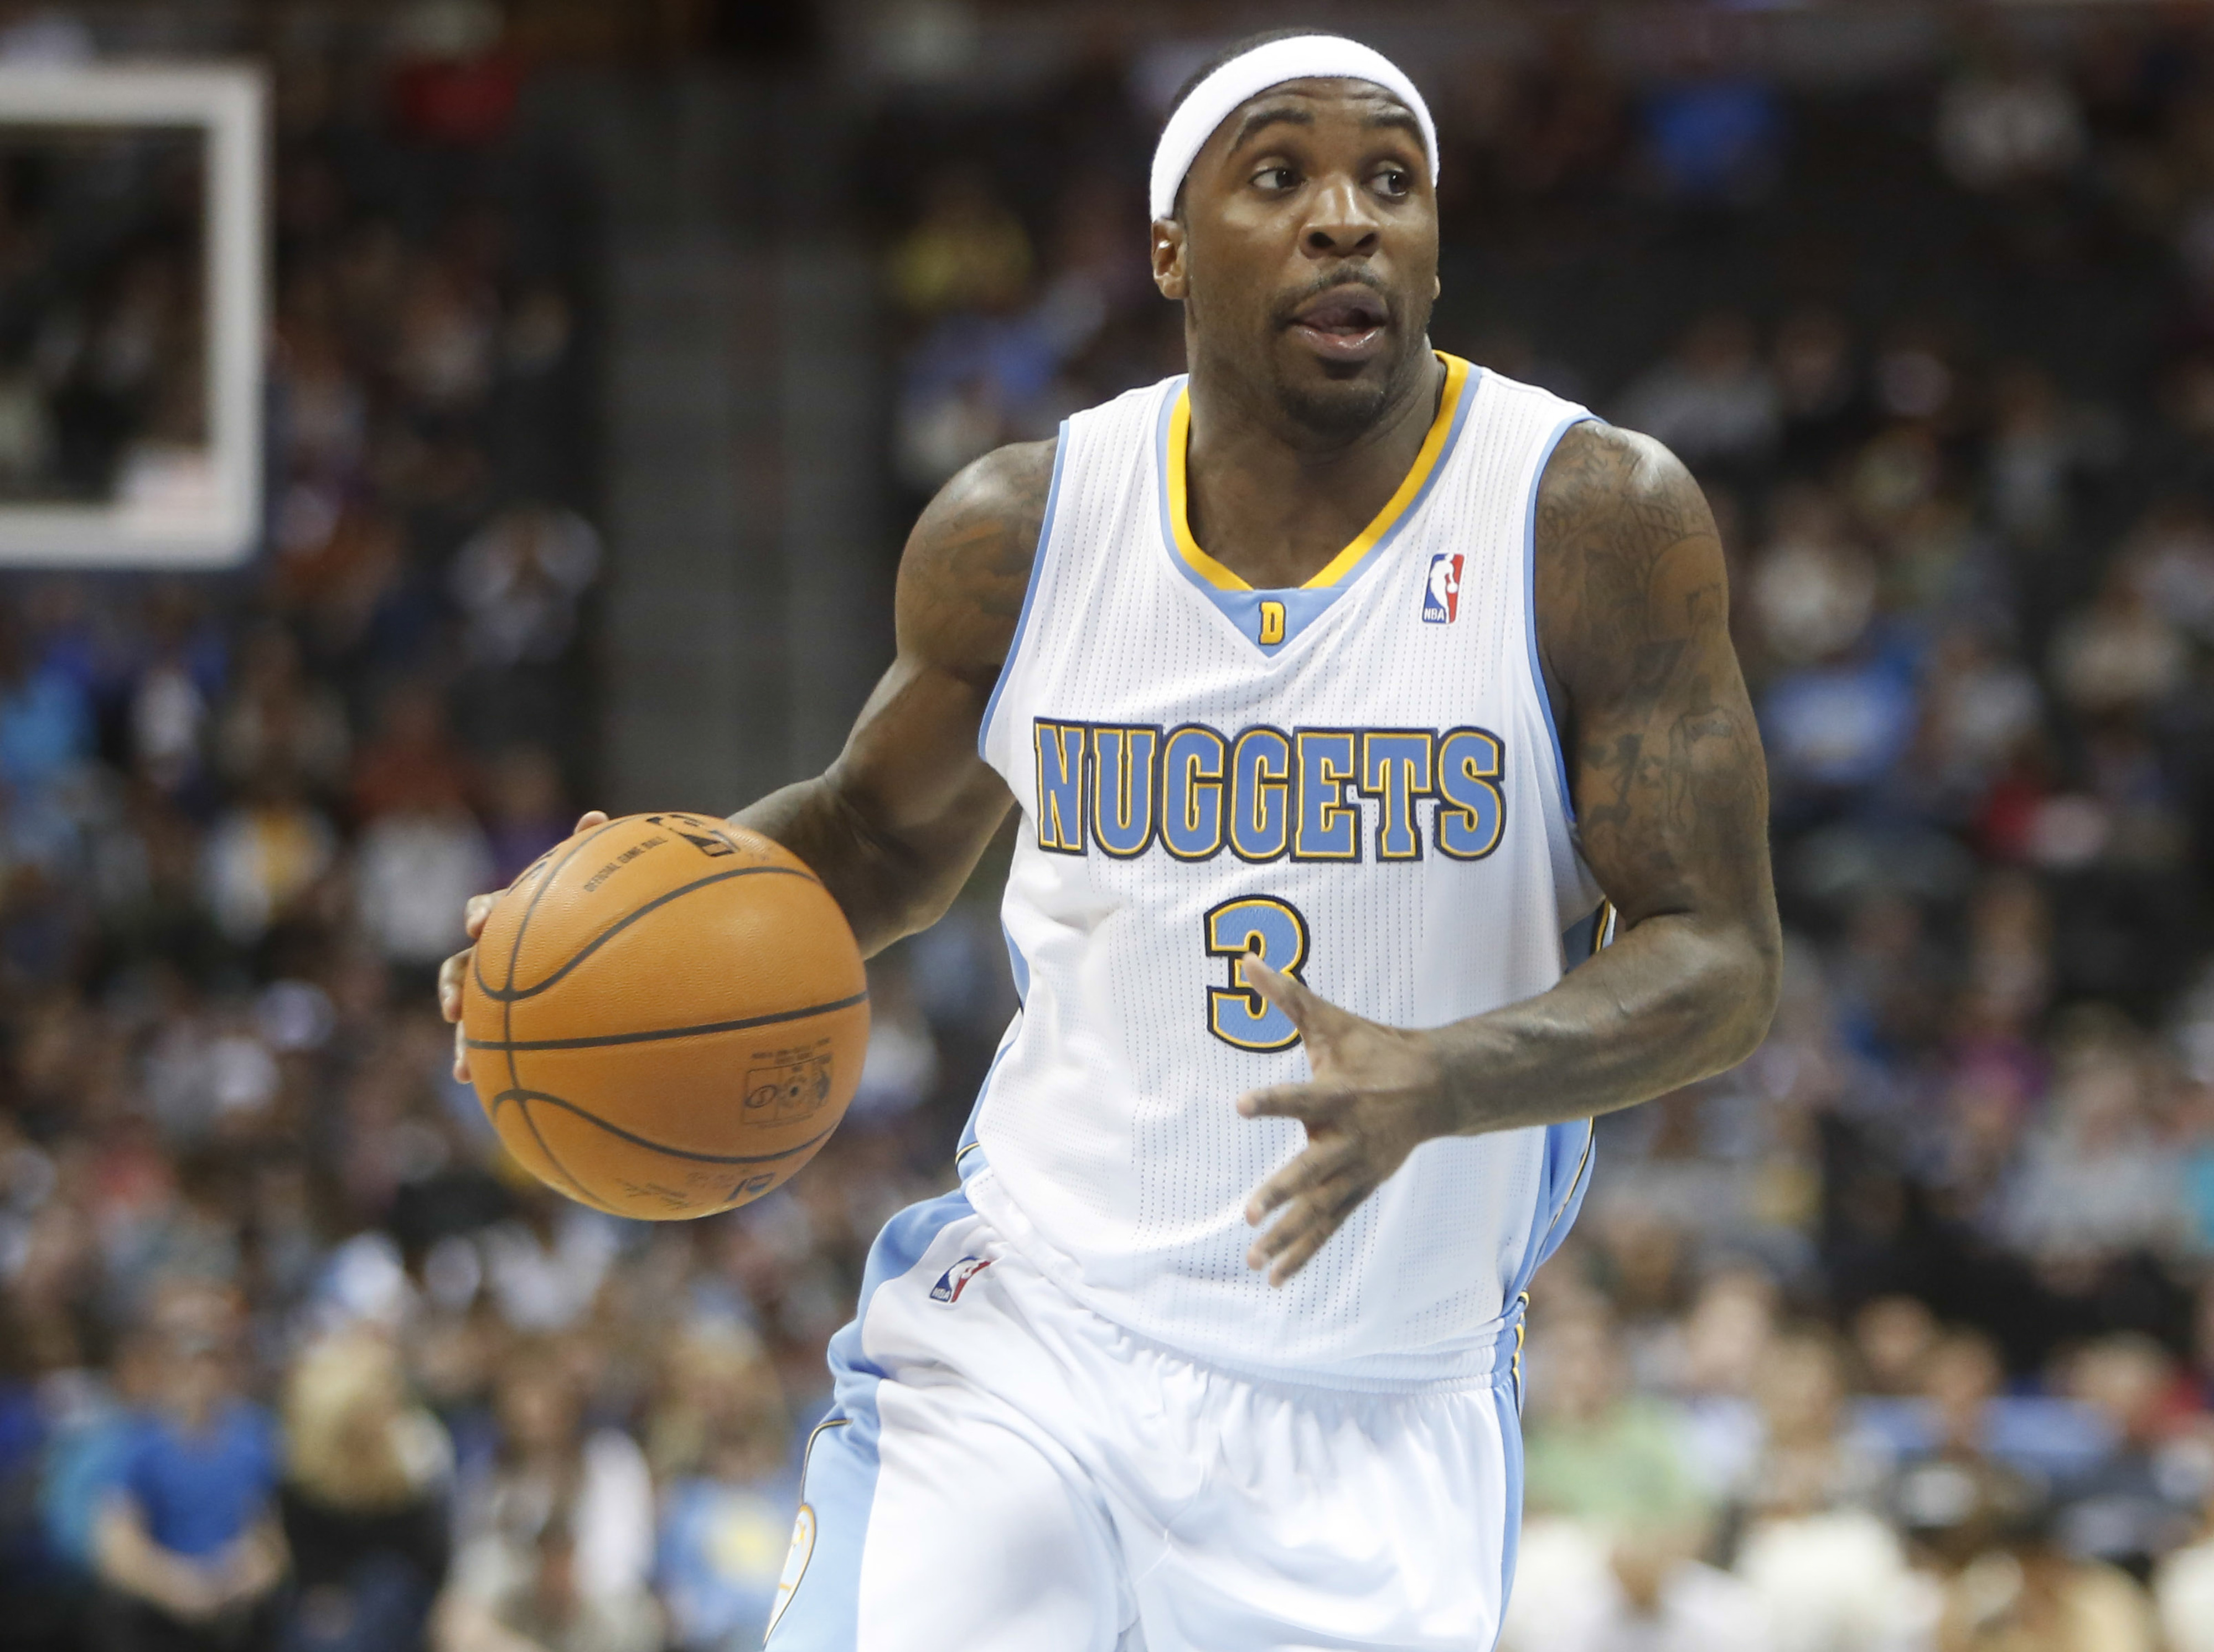 Ty Lawson is the subject of an interesting trade proposal